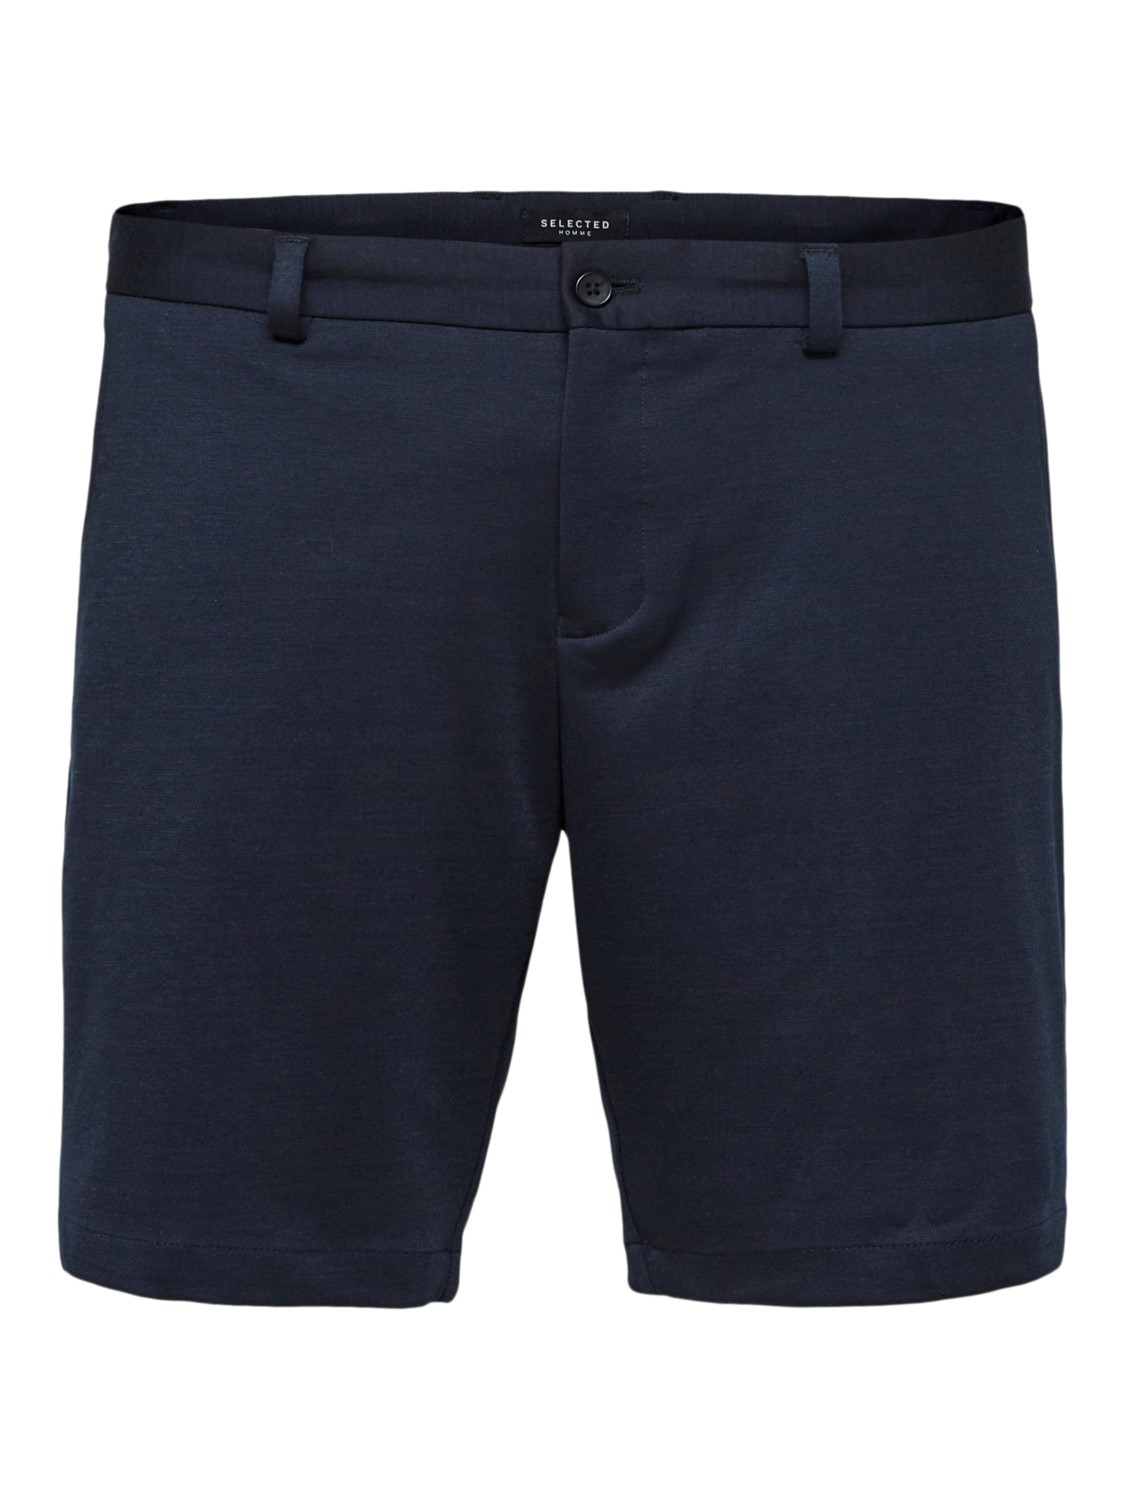 Selected - slhaiden Shorts Navy | Gate36 Hobro